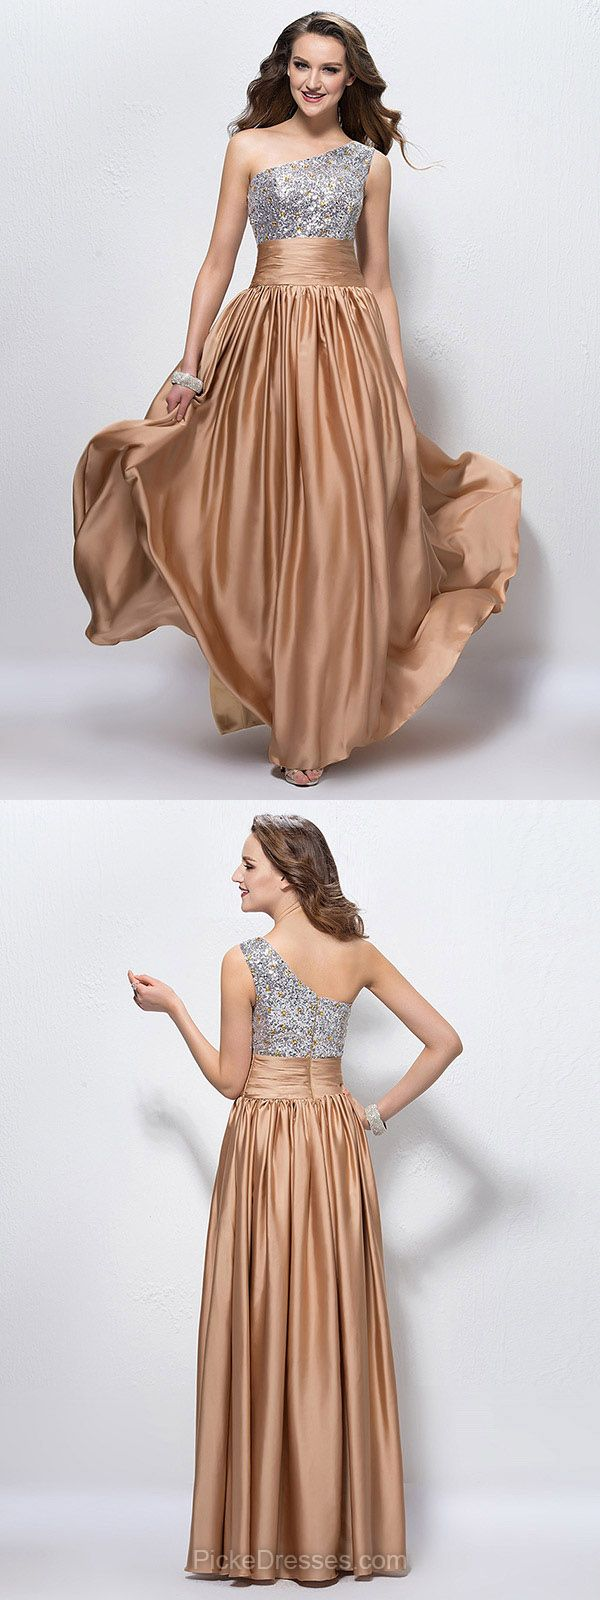 Champagne Prom Dresses Long, Cheap Prom Dresses For Teens 2018, A ...